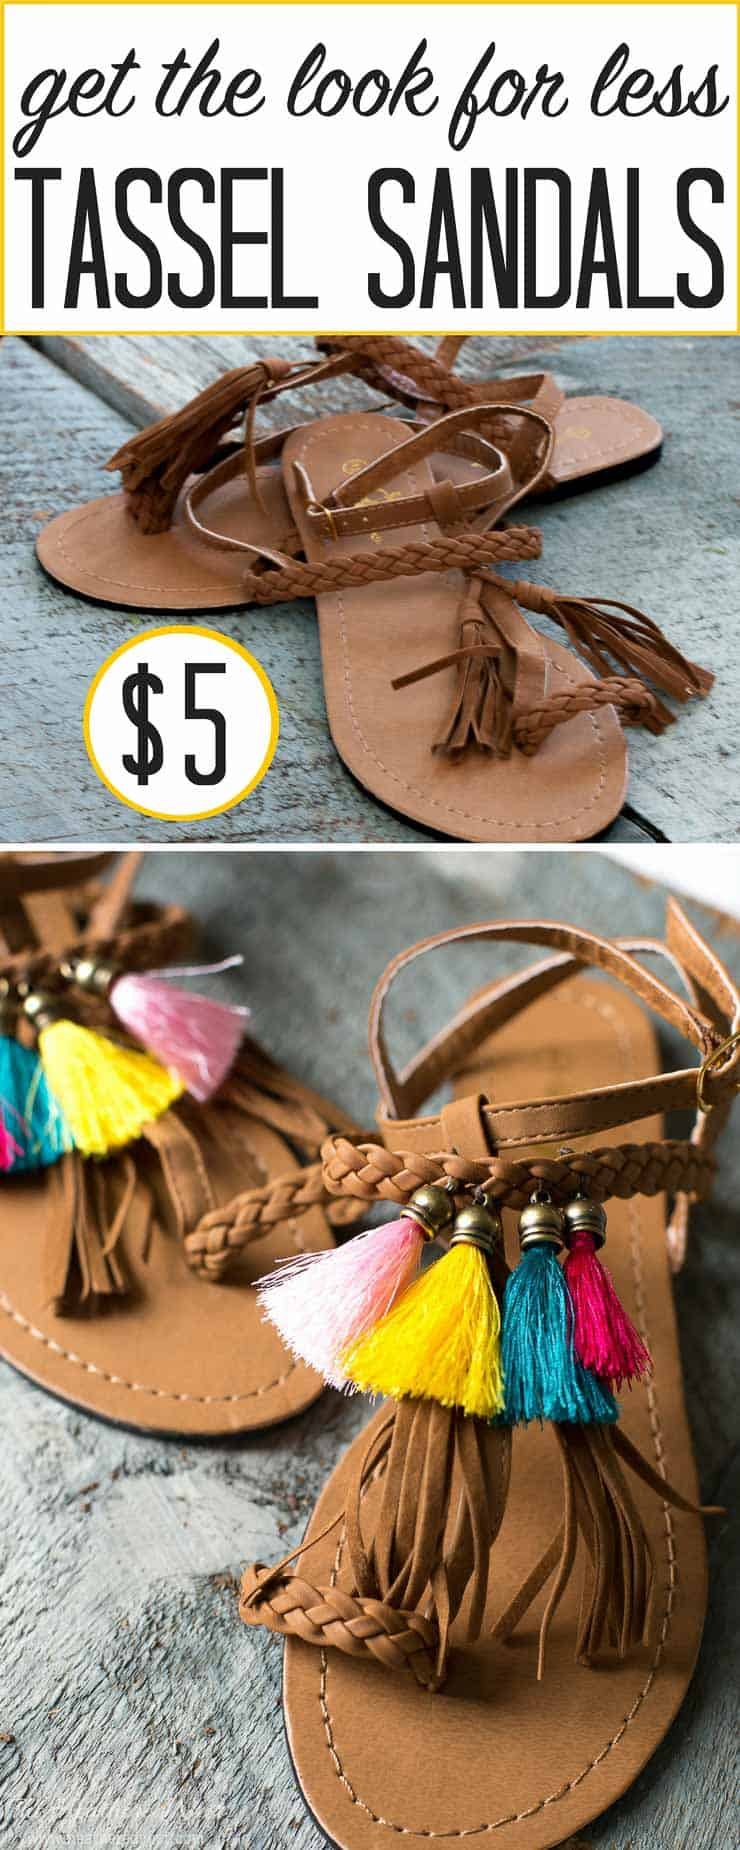 I ADORE THIS IDEA!!! Add fringe to some sandals for your own DIY tassel sandals! She made these for $6!! And I've seen these for hundreds!!!! LOVE this summer fringe sandal idea from heatherednest.com